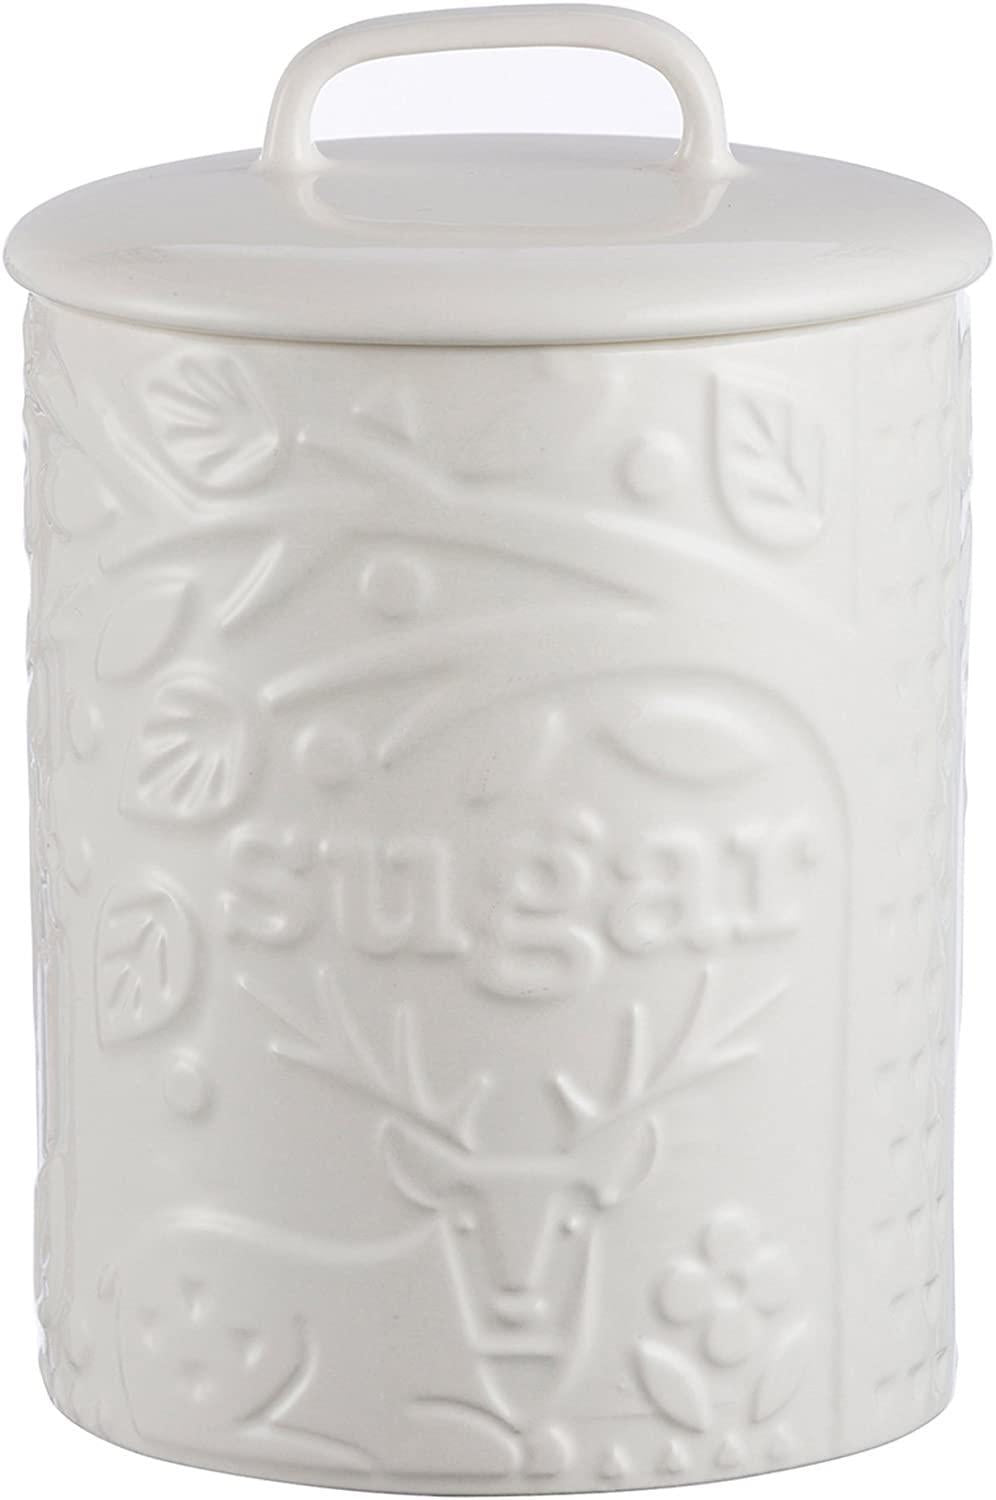 Mason Cash | IN THE FOREST 25 OZ SUGAR JAR